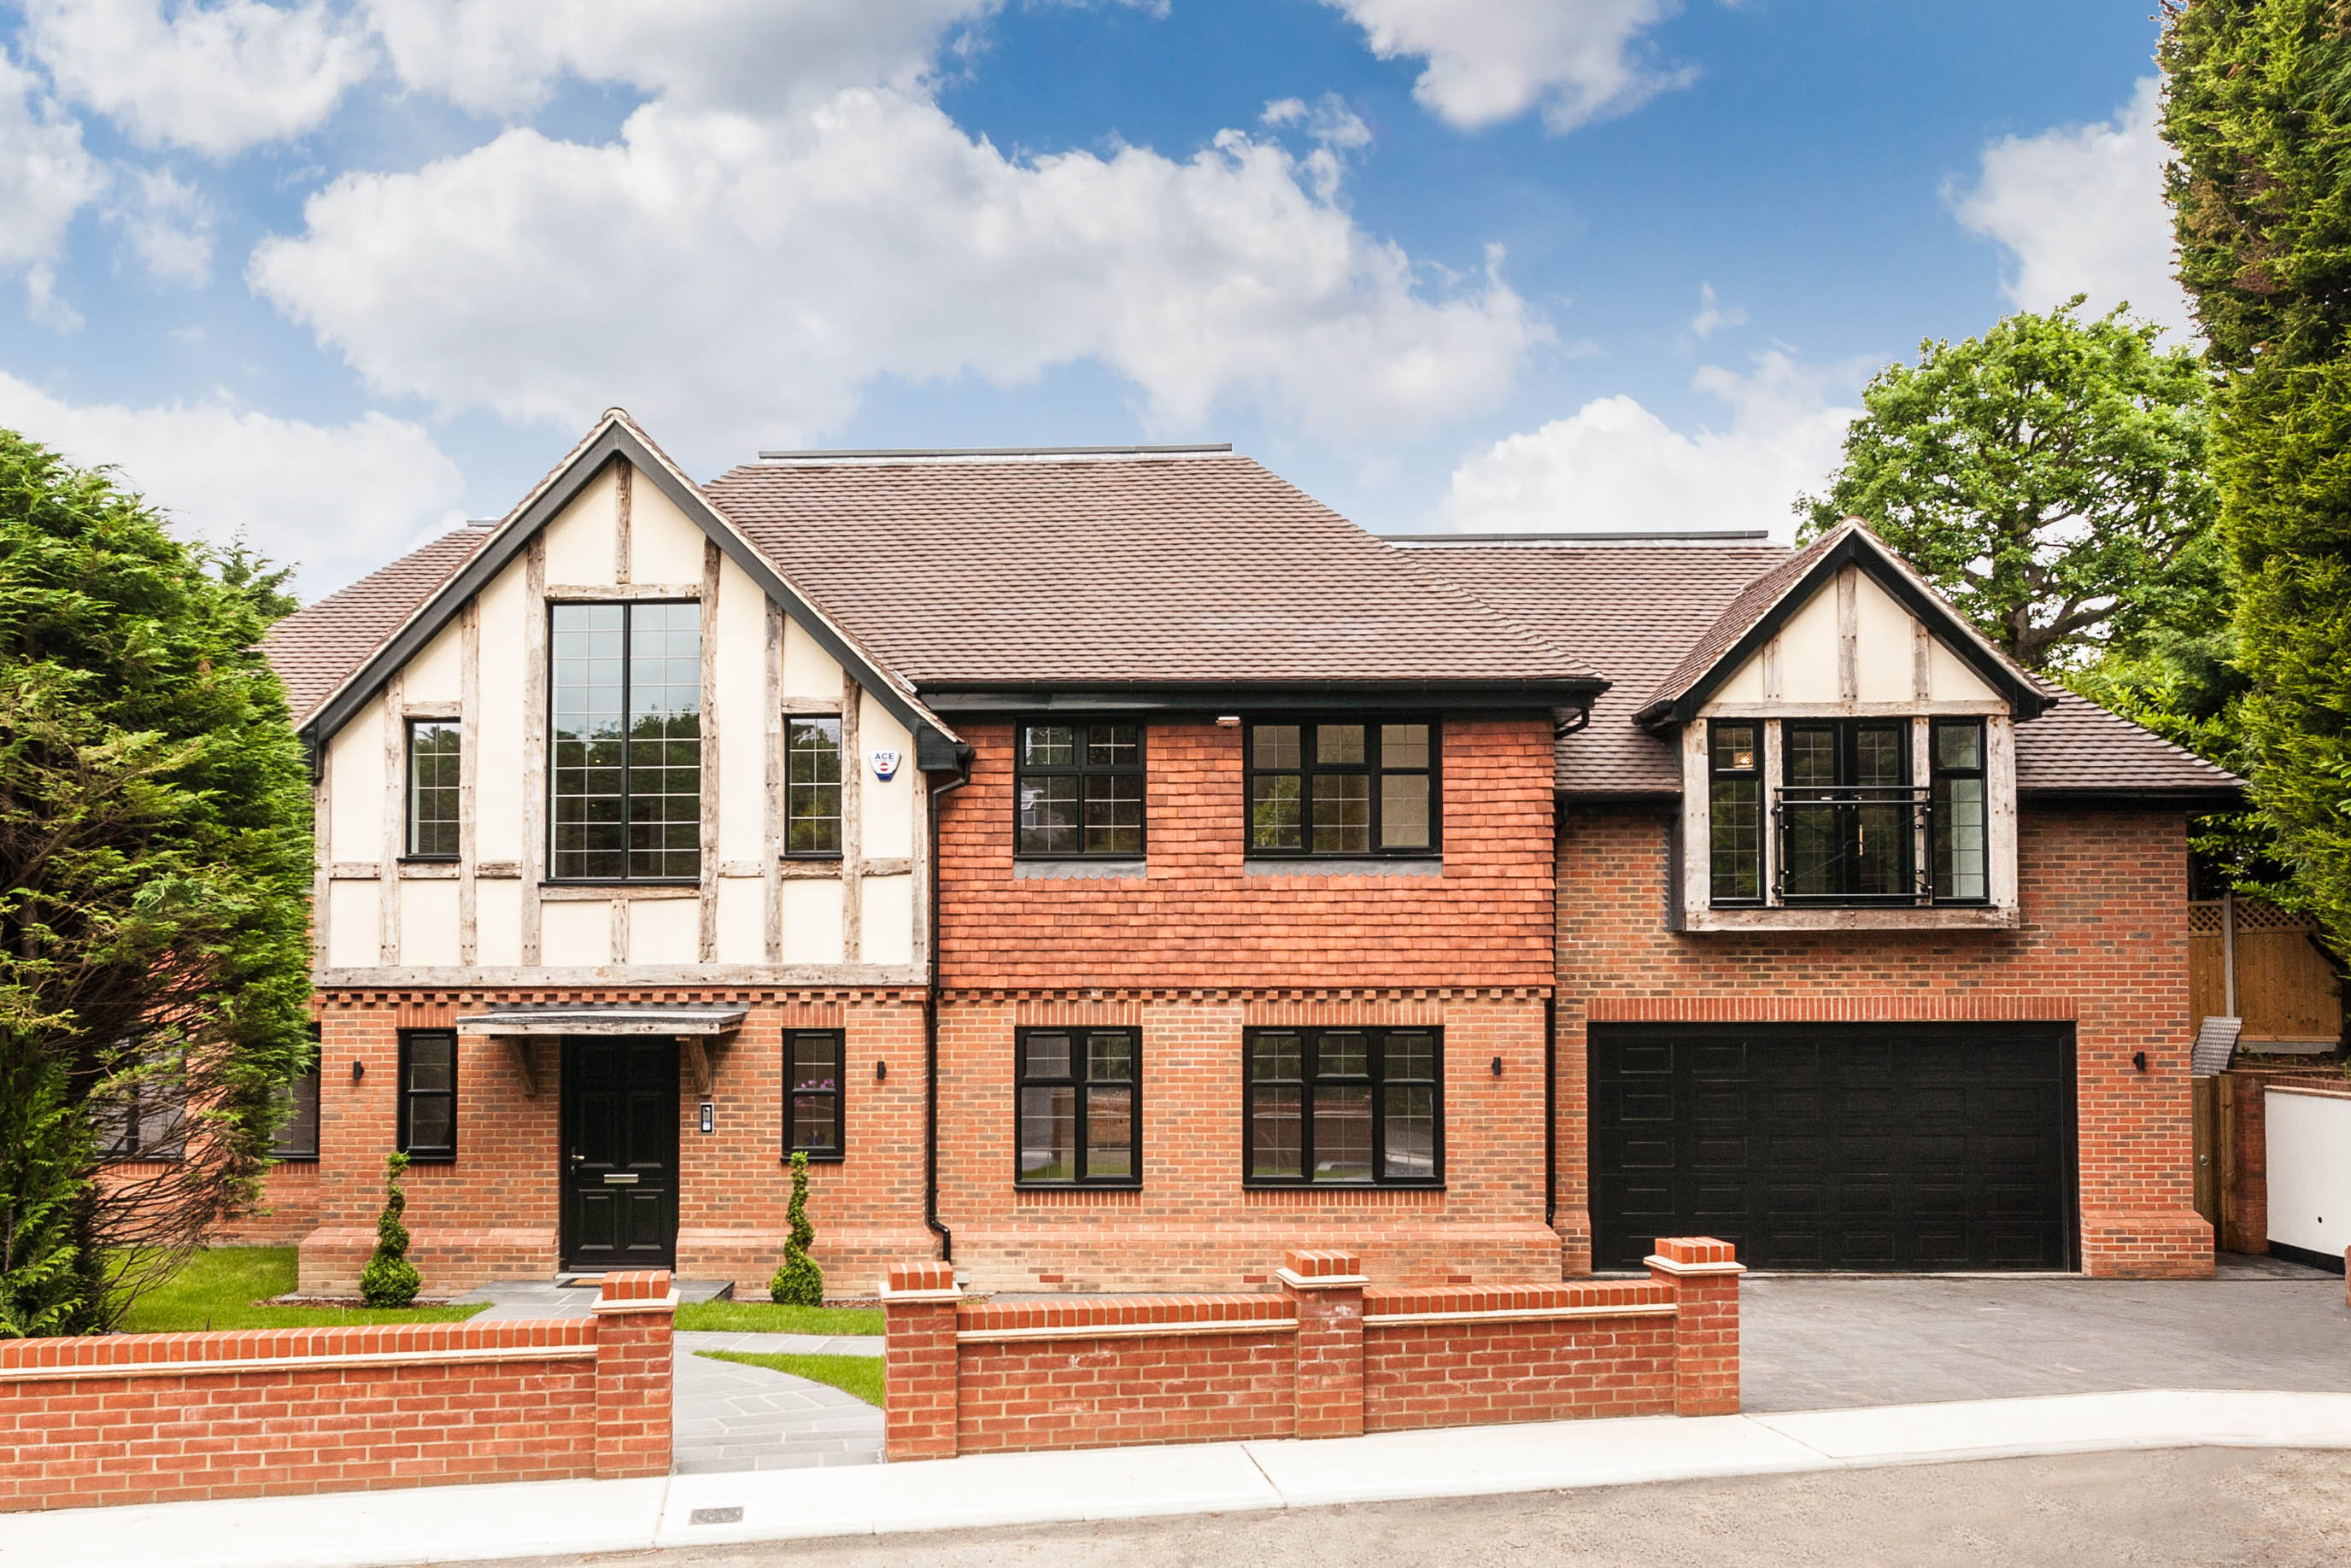 5 Bedroom Detached House For Sale In Mount Close Bromley Br1 London